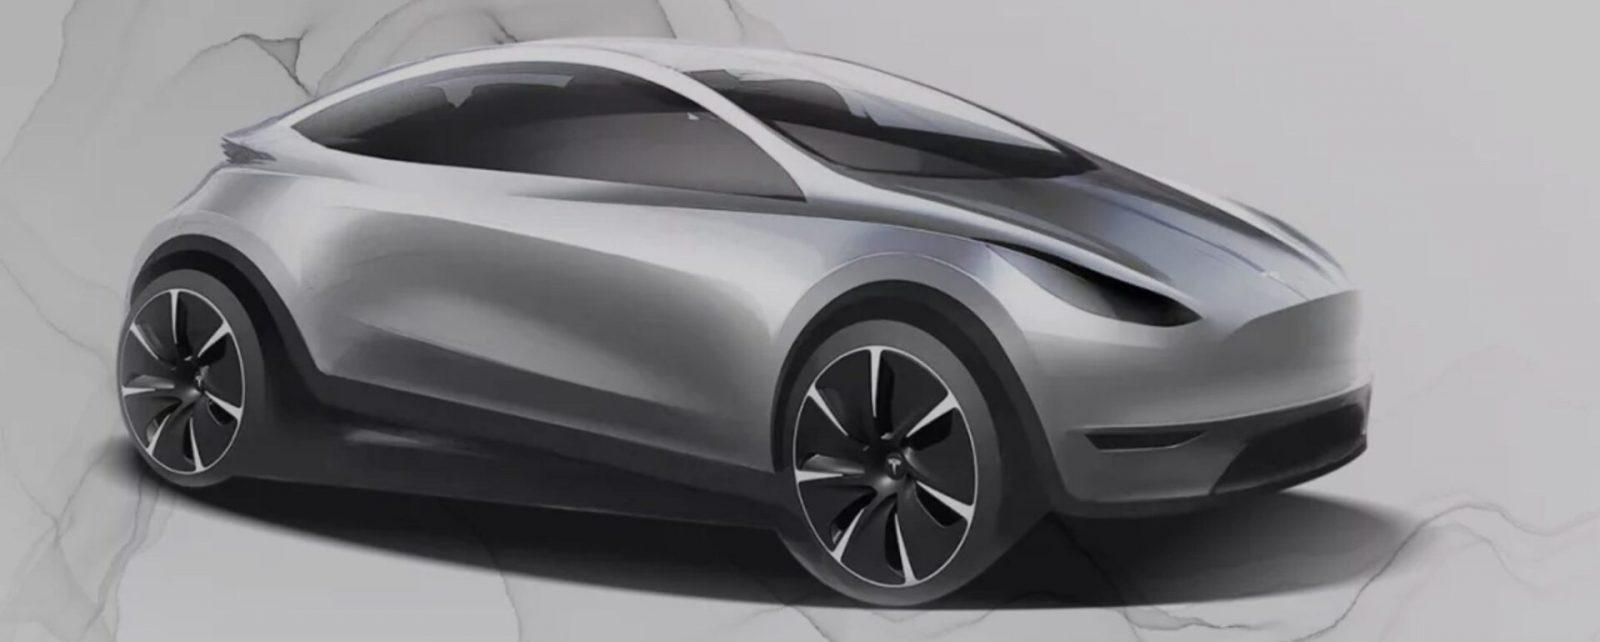 Tesla electric hatchback: Elon Musk says new car might be designed in Germany